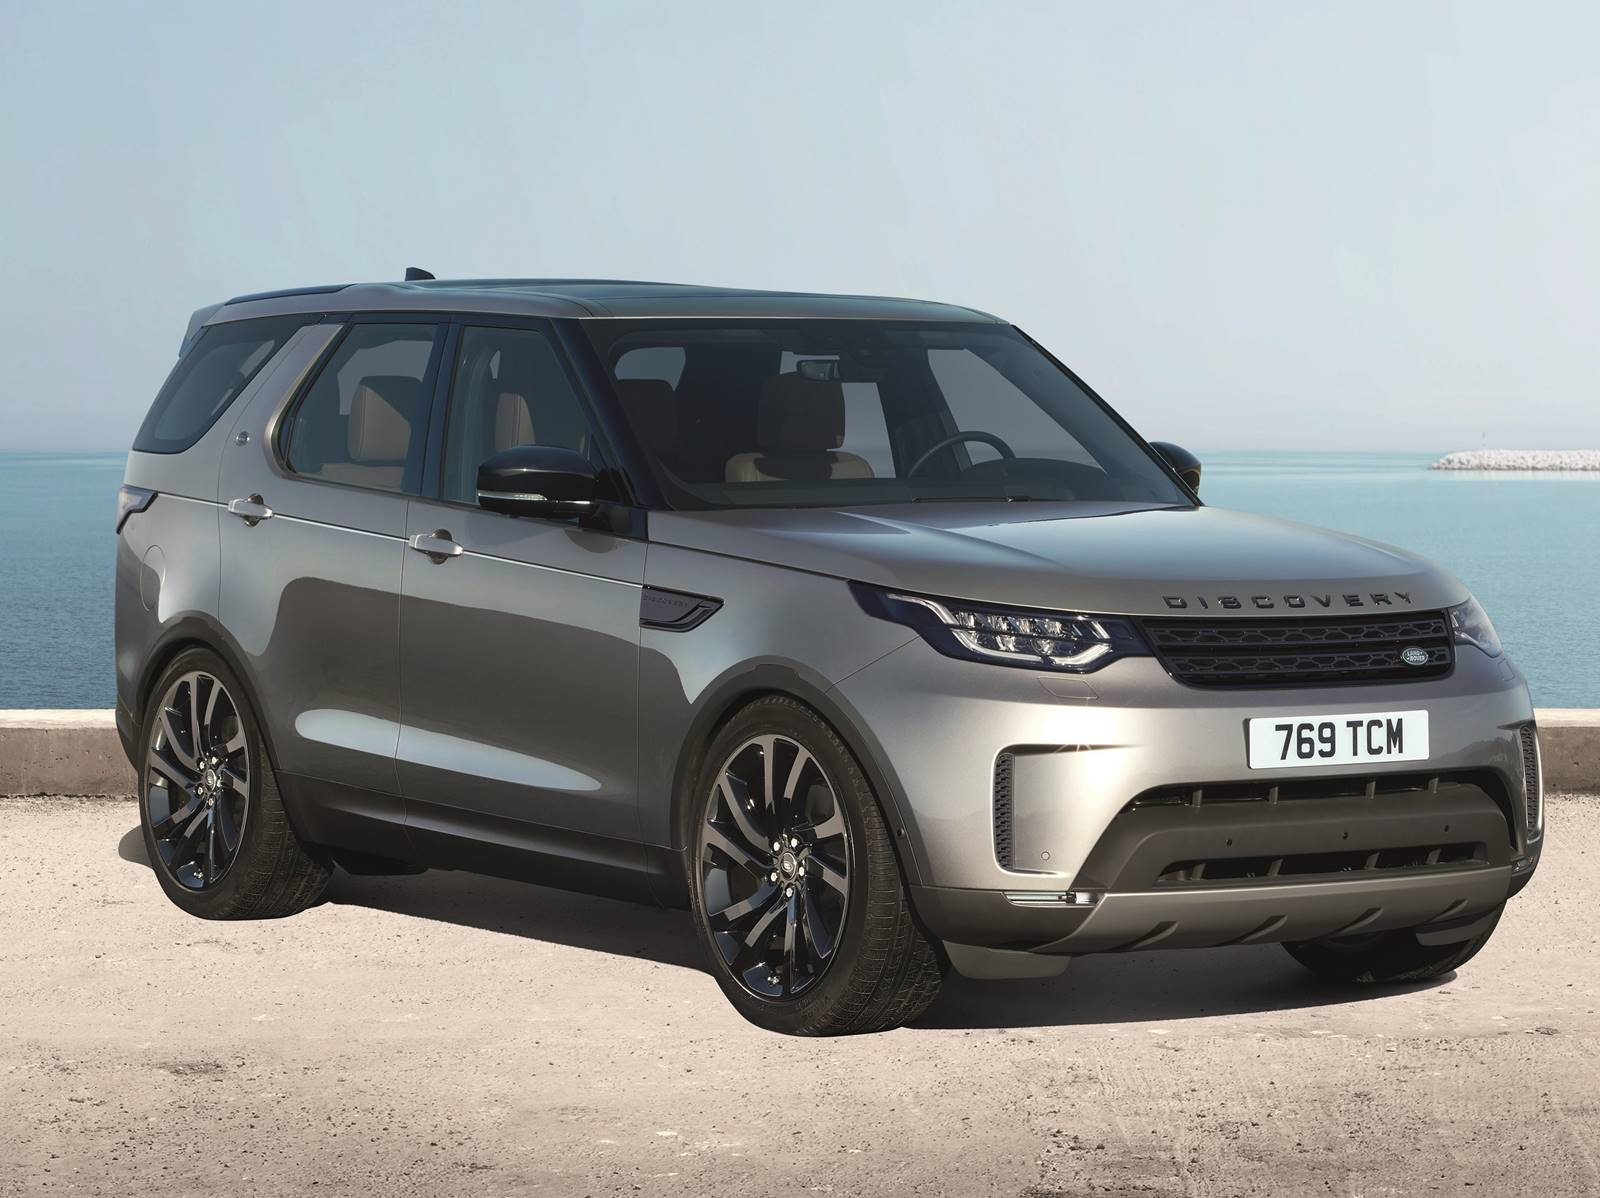 land rover discovery 2017 fotos e especifica es oficiais car blog br. Black Bedroom Furniture Sets. Home Design Ideas